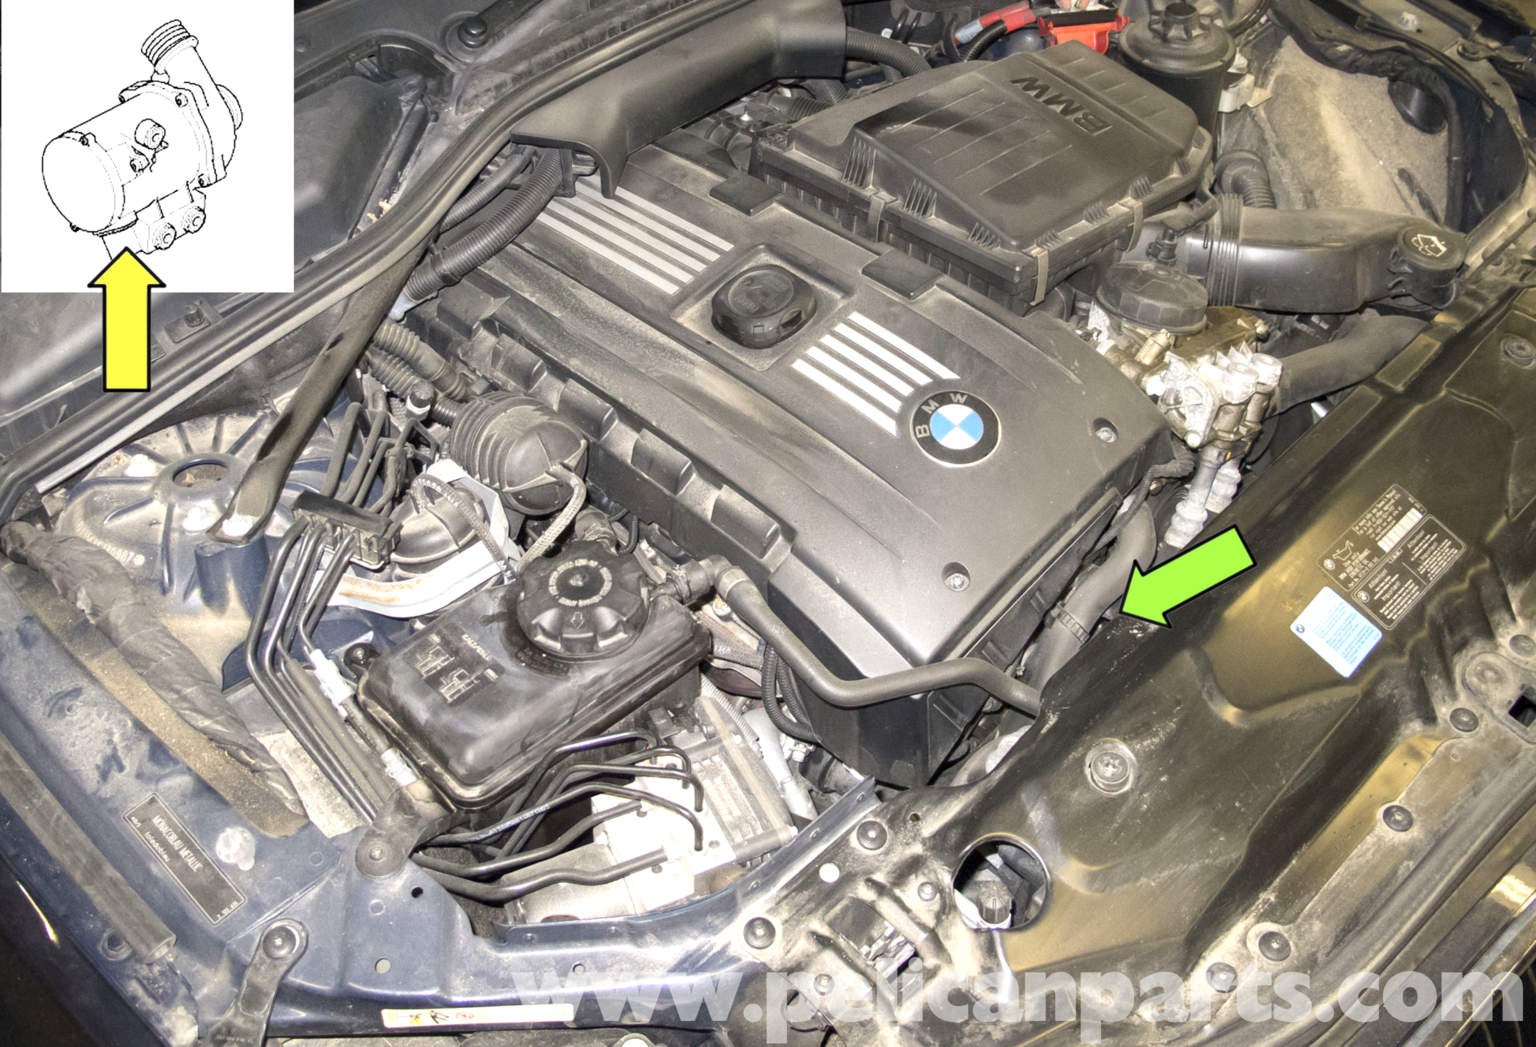 Xi Fuse Box Location Bmw E60 5 Series Water Pump Testing Pelican Parts